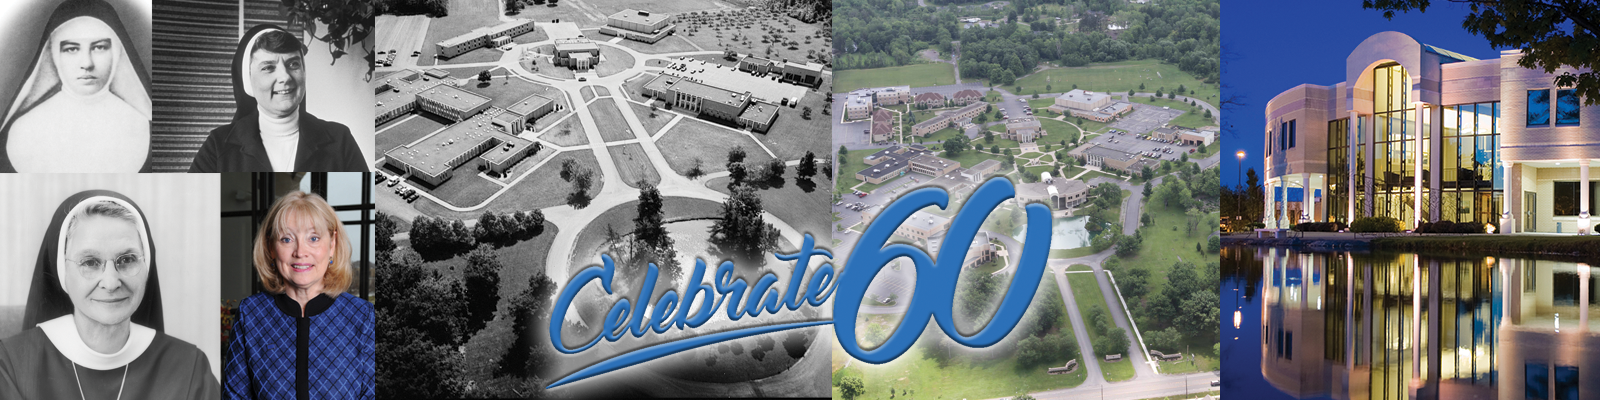 Celebrate 60 collage of photos